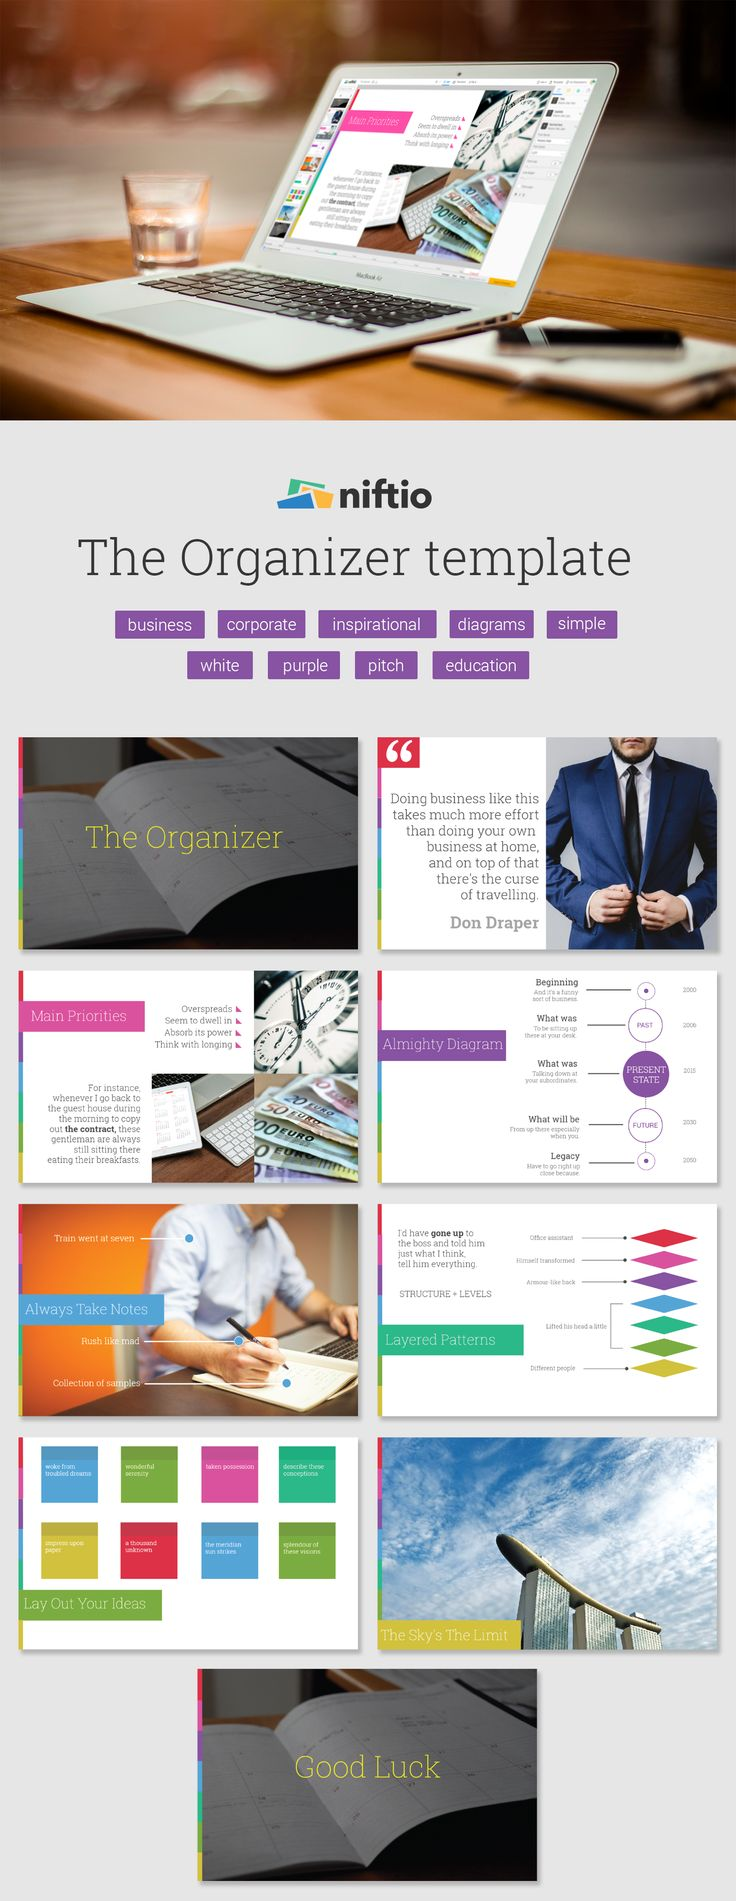 Deliver business presentation with a modern look that could impress a whole board of directors